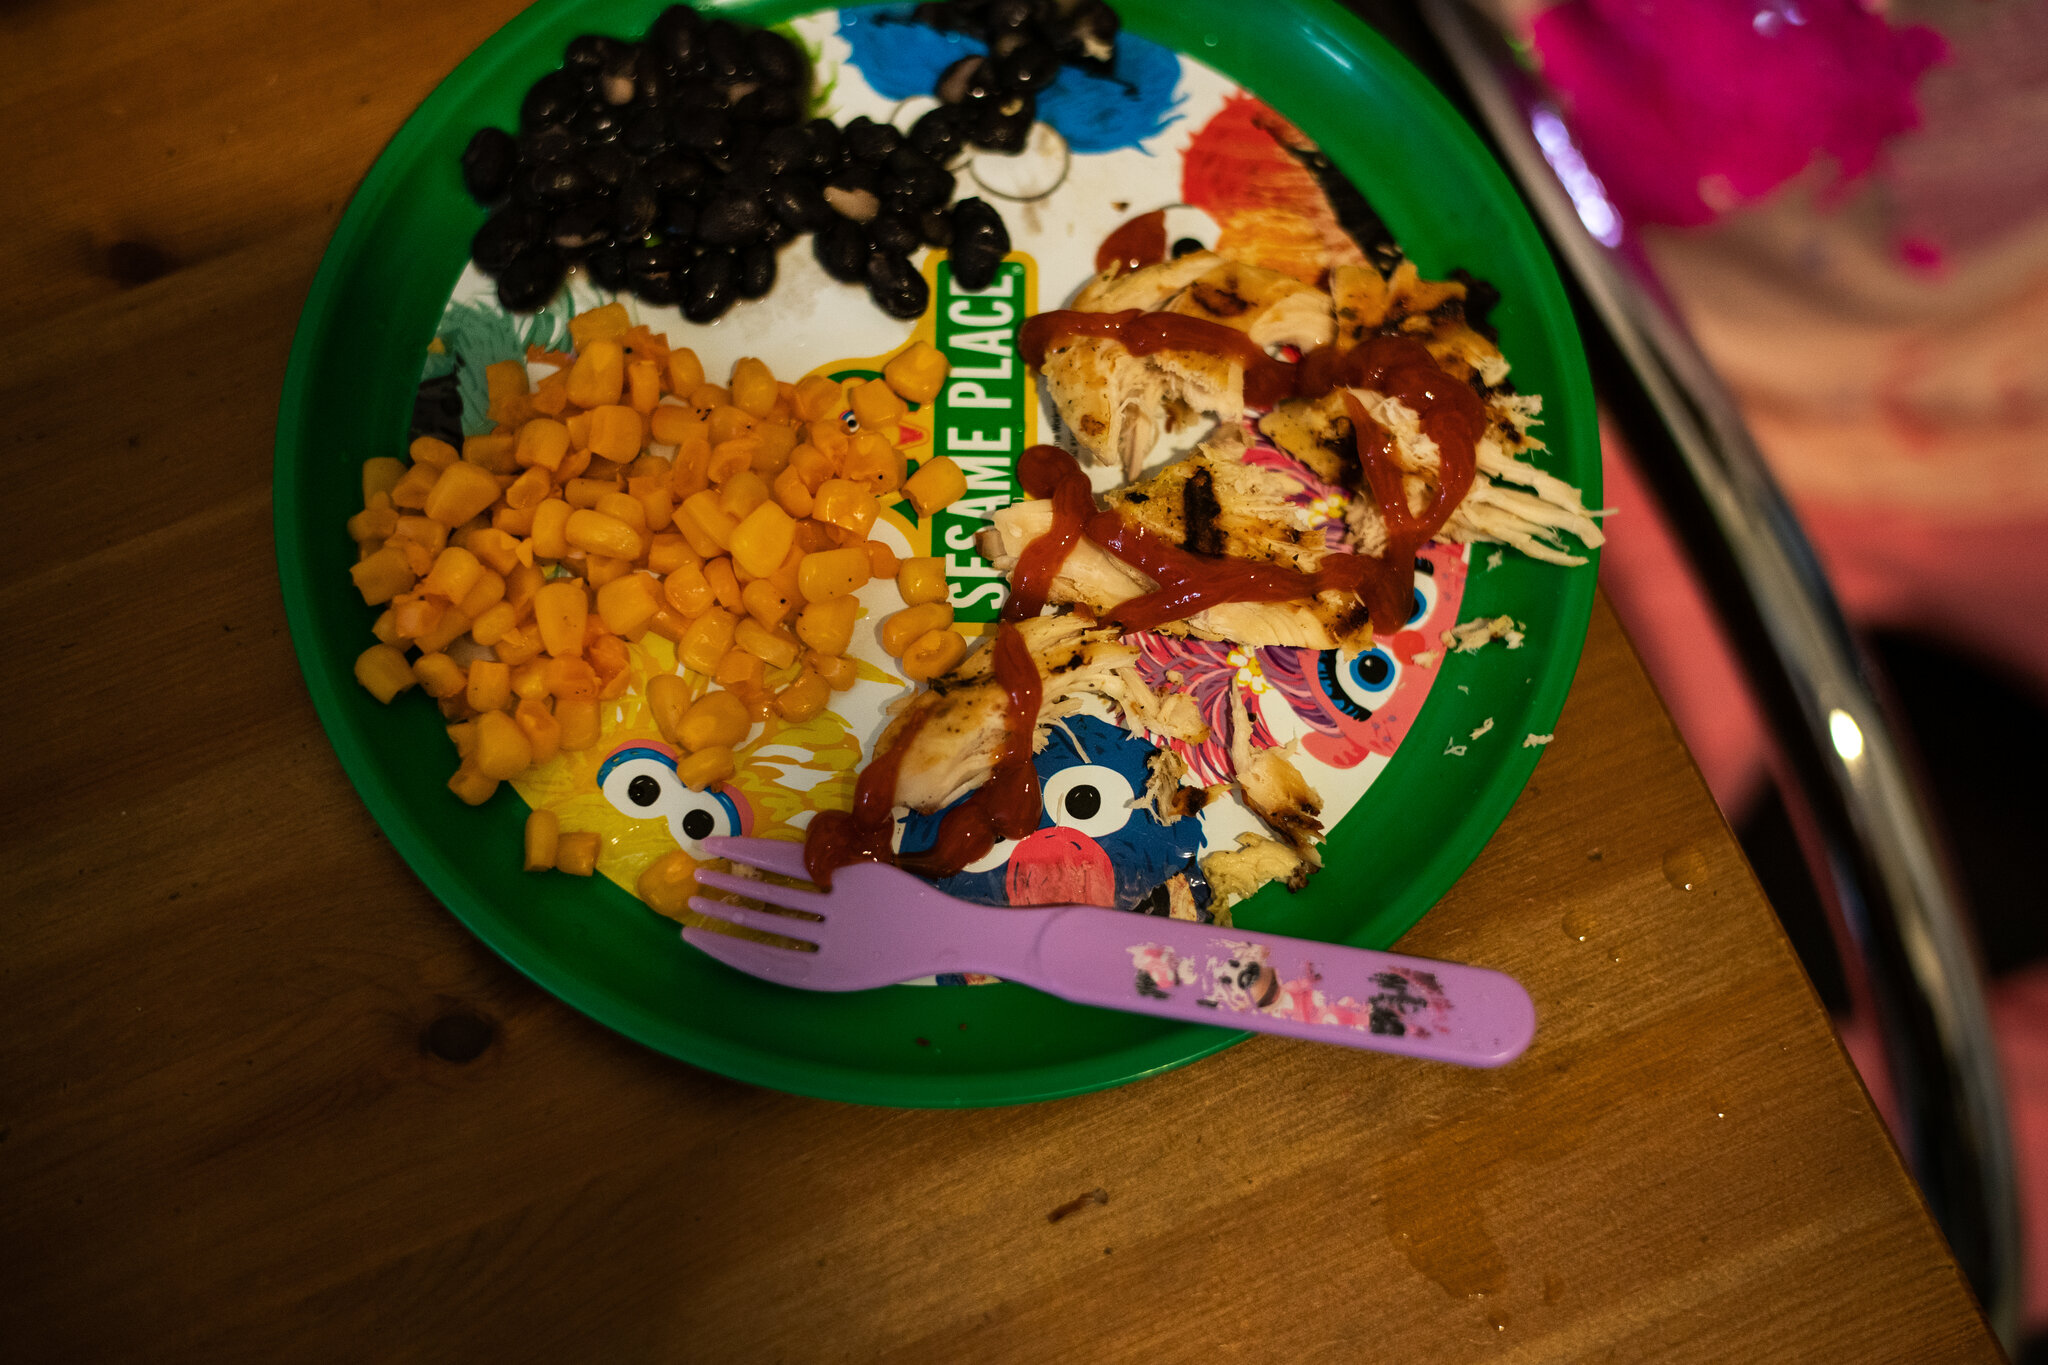 Thanks to Masbia and other nonprofit organizations kids like Trinity have a meal on their table. Photo by Todd Heisler photographer of the New York Times.